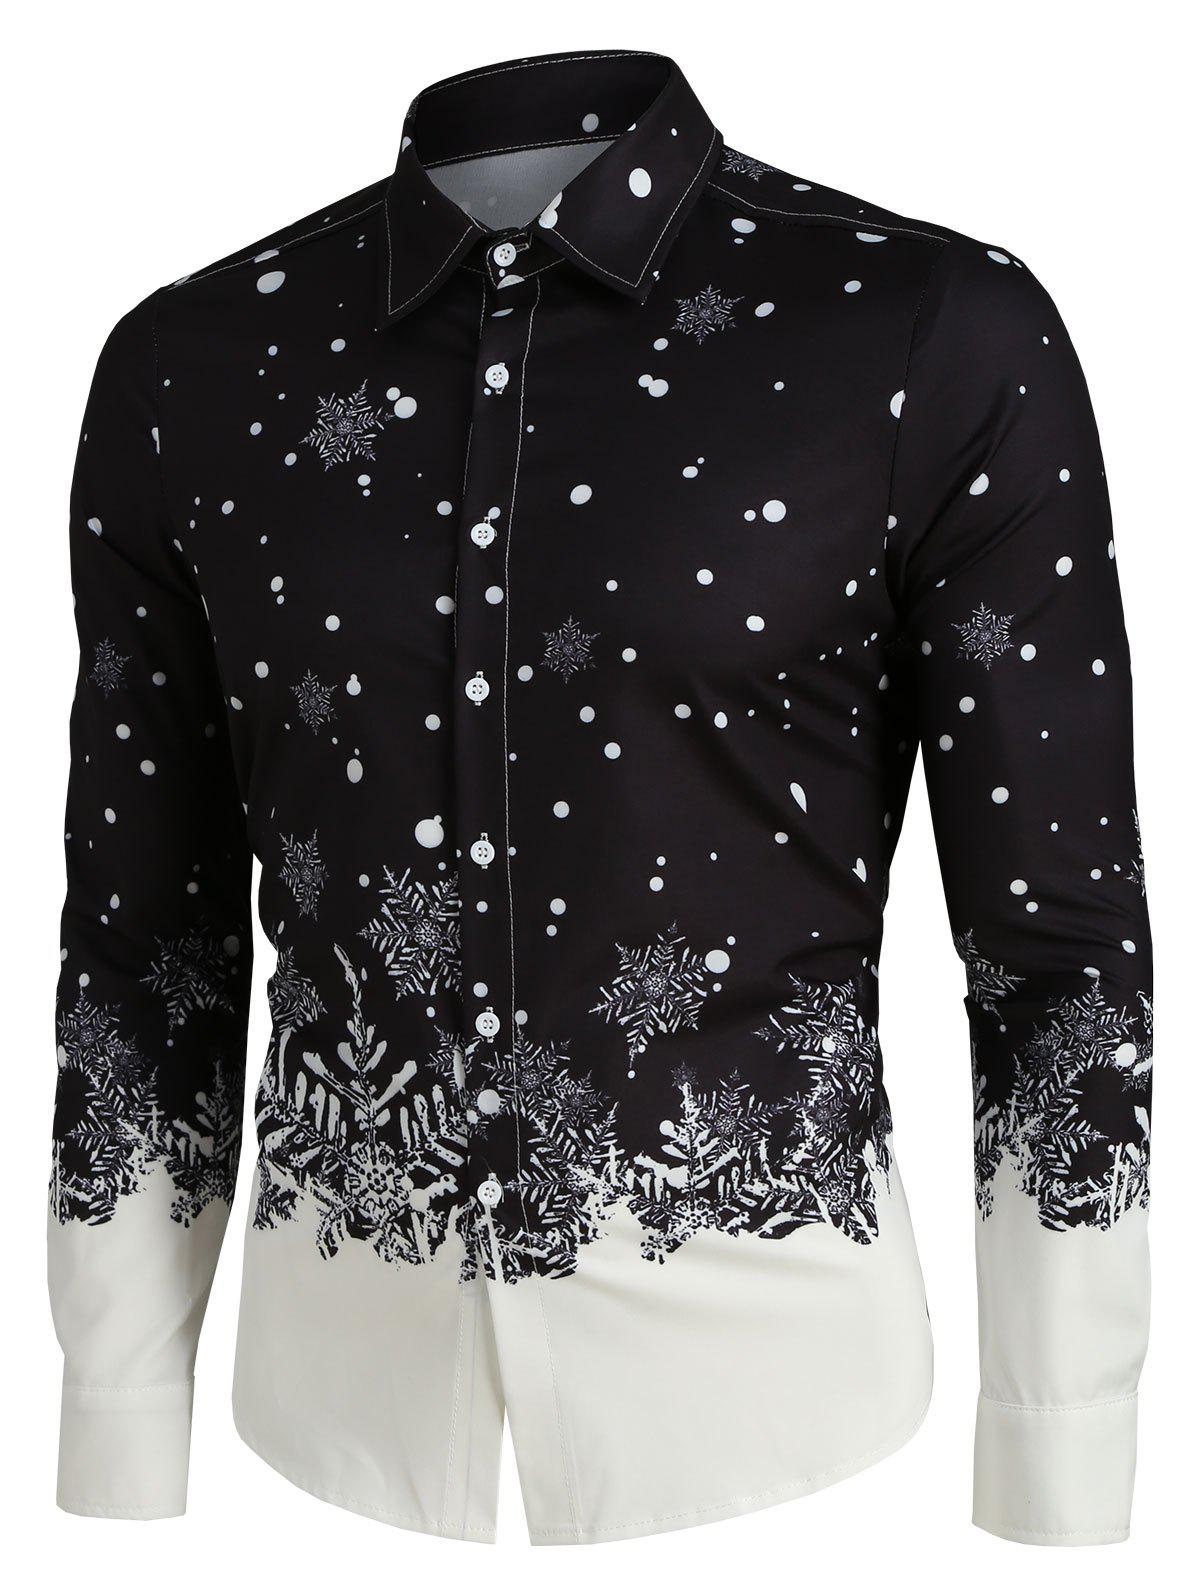 Store Christmas Snowflake Print Long Sleeve Button Up Shirt